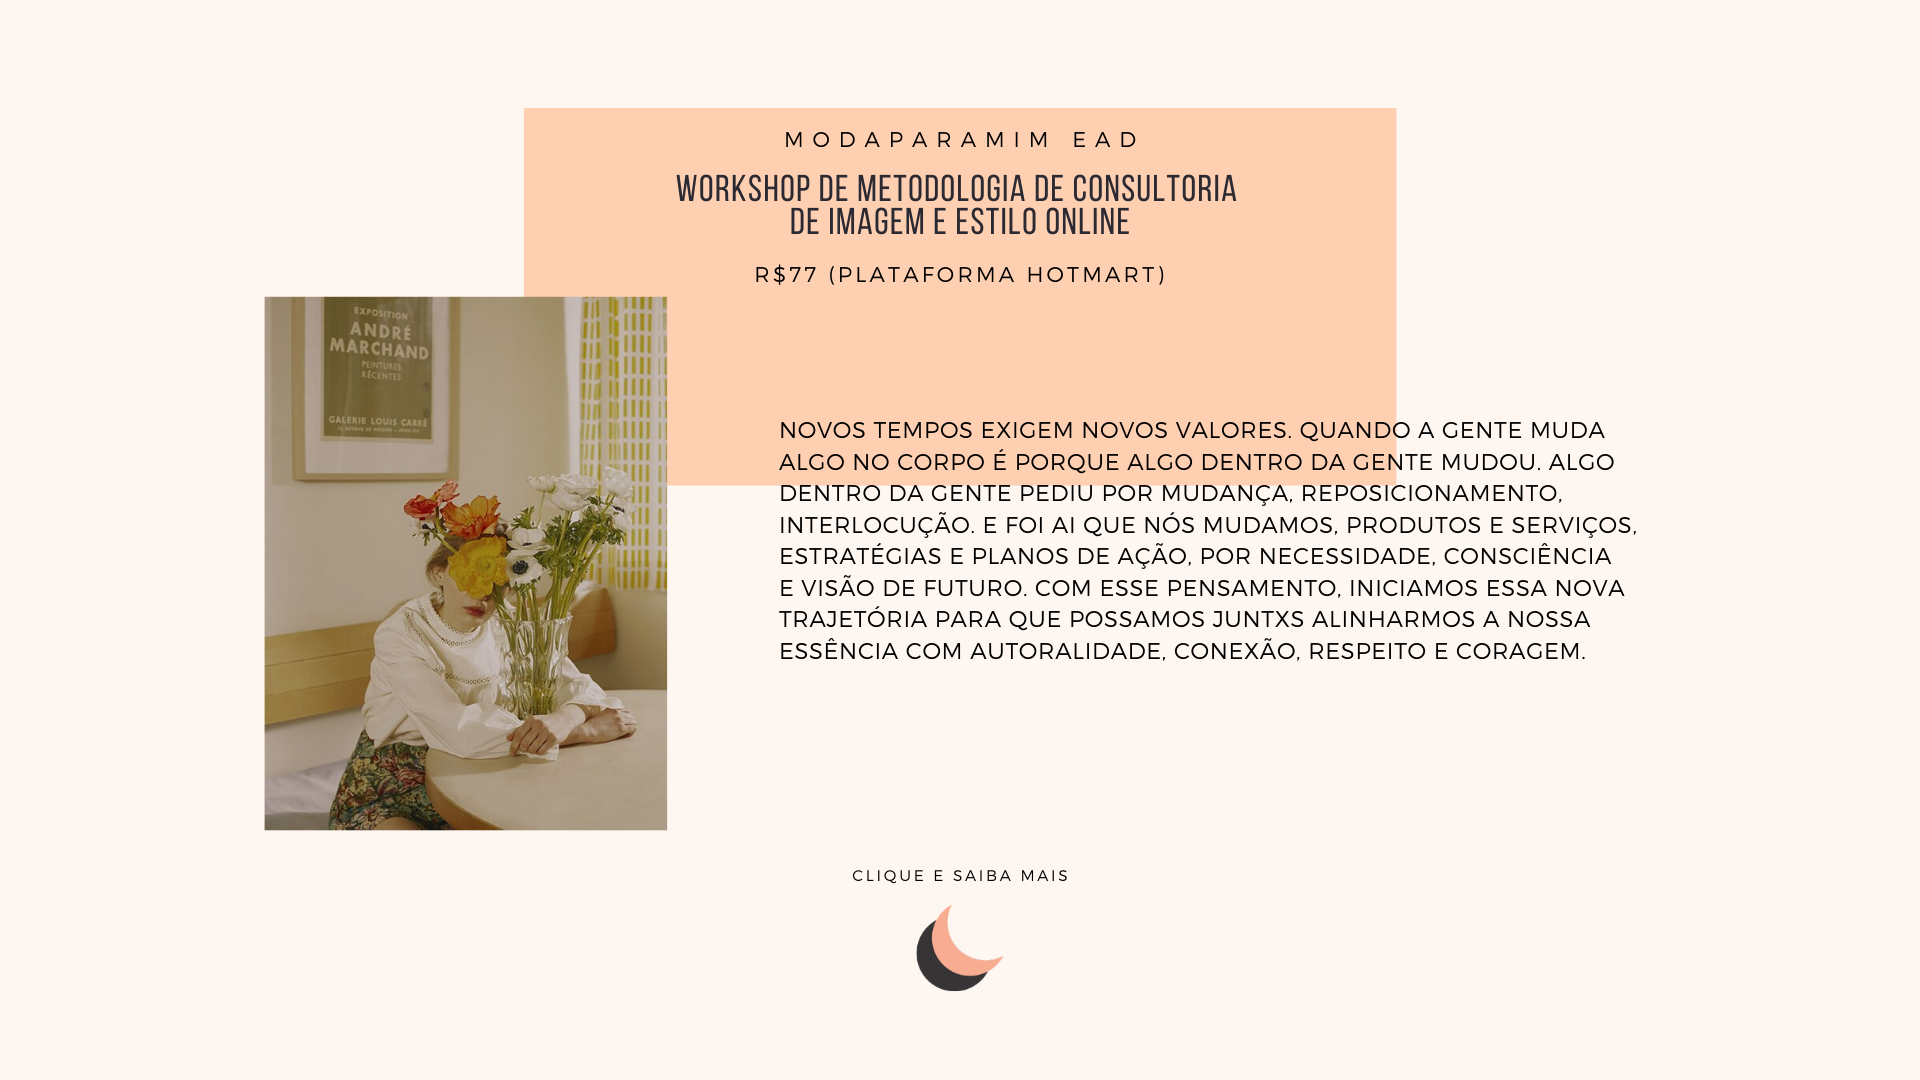 Workshop de Metodologia